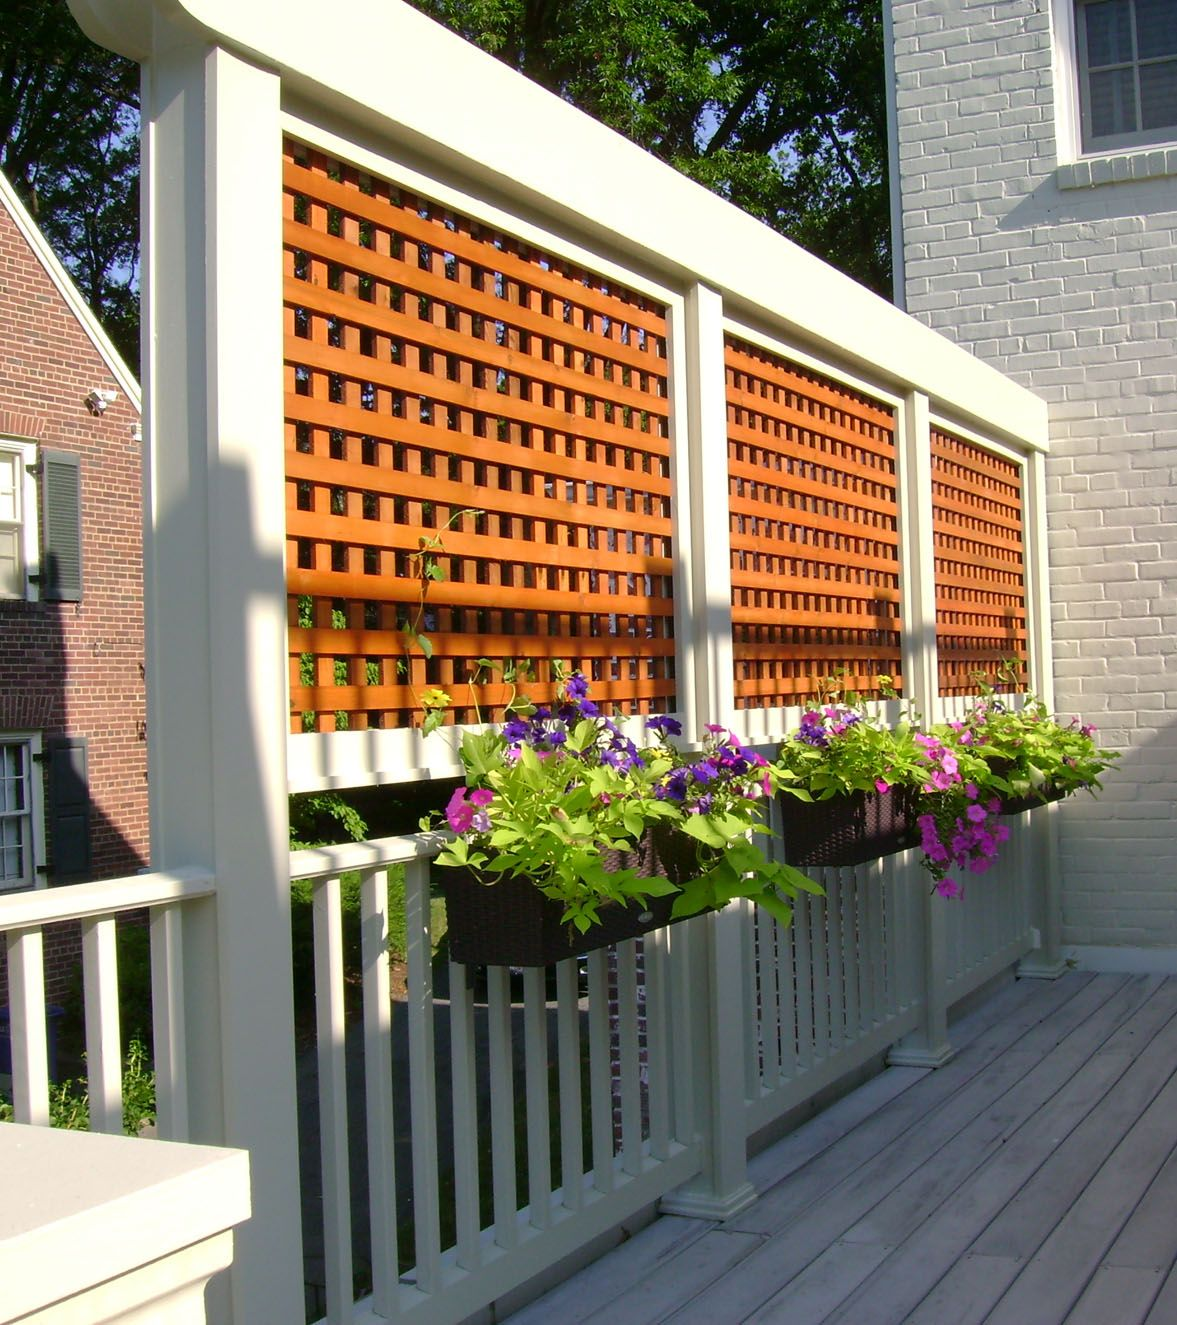 A little privacy makes for good neighbors petro design for Deck privacy screen panels